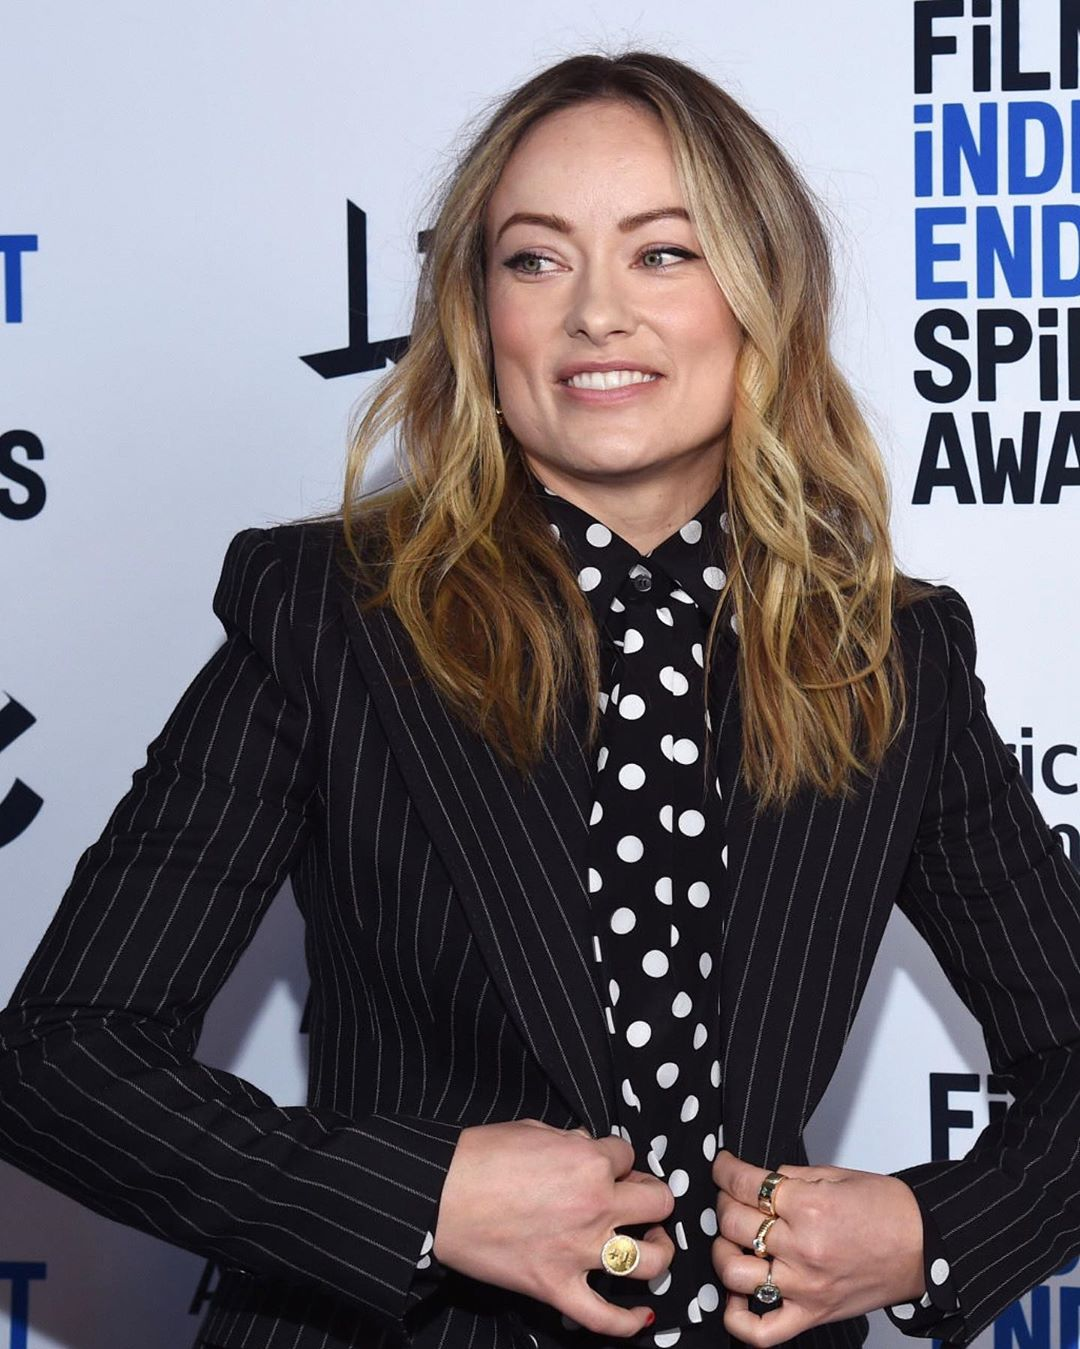 Olivia Wilde wows in pinstripe suit at Film Independent Spirit Awards Brunch